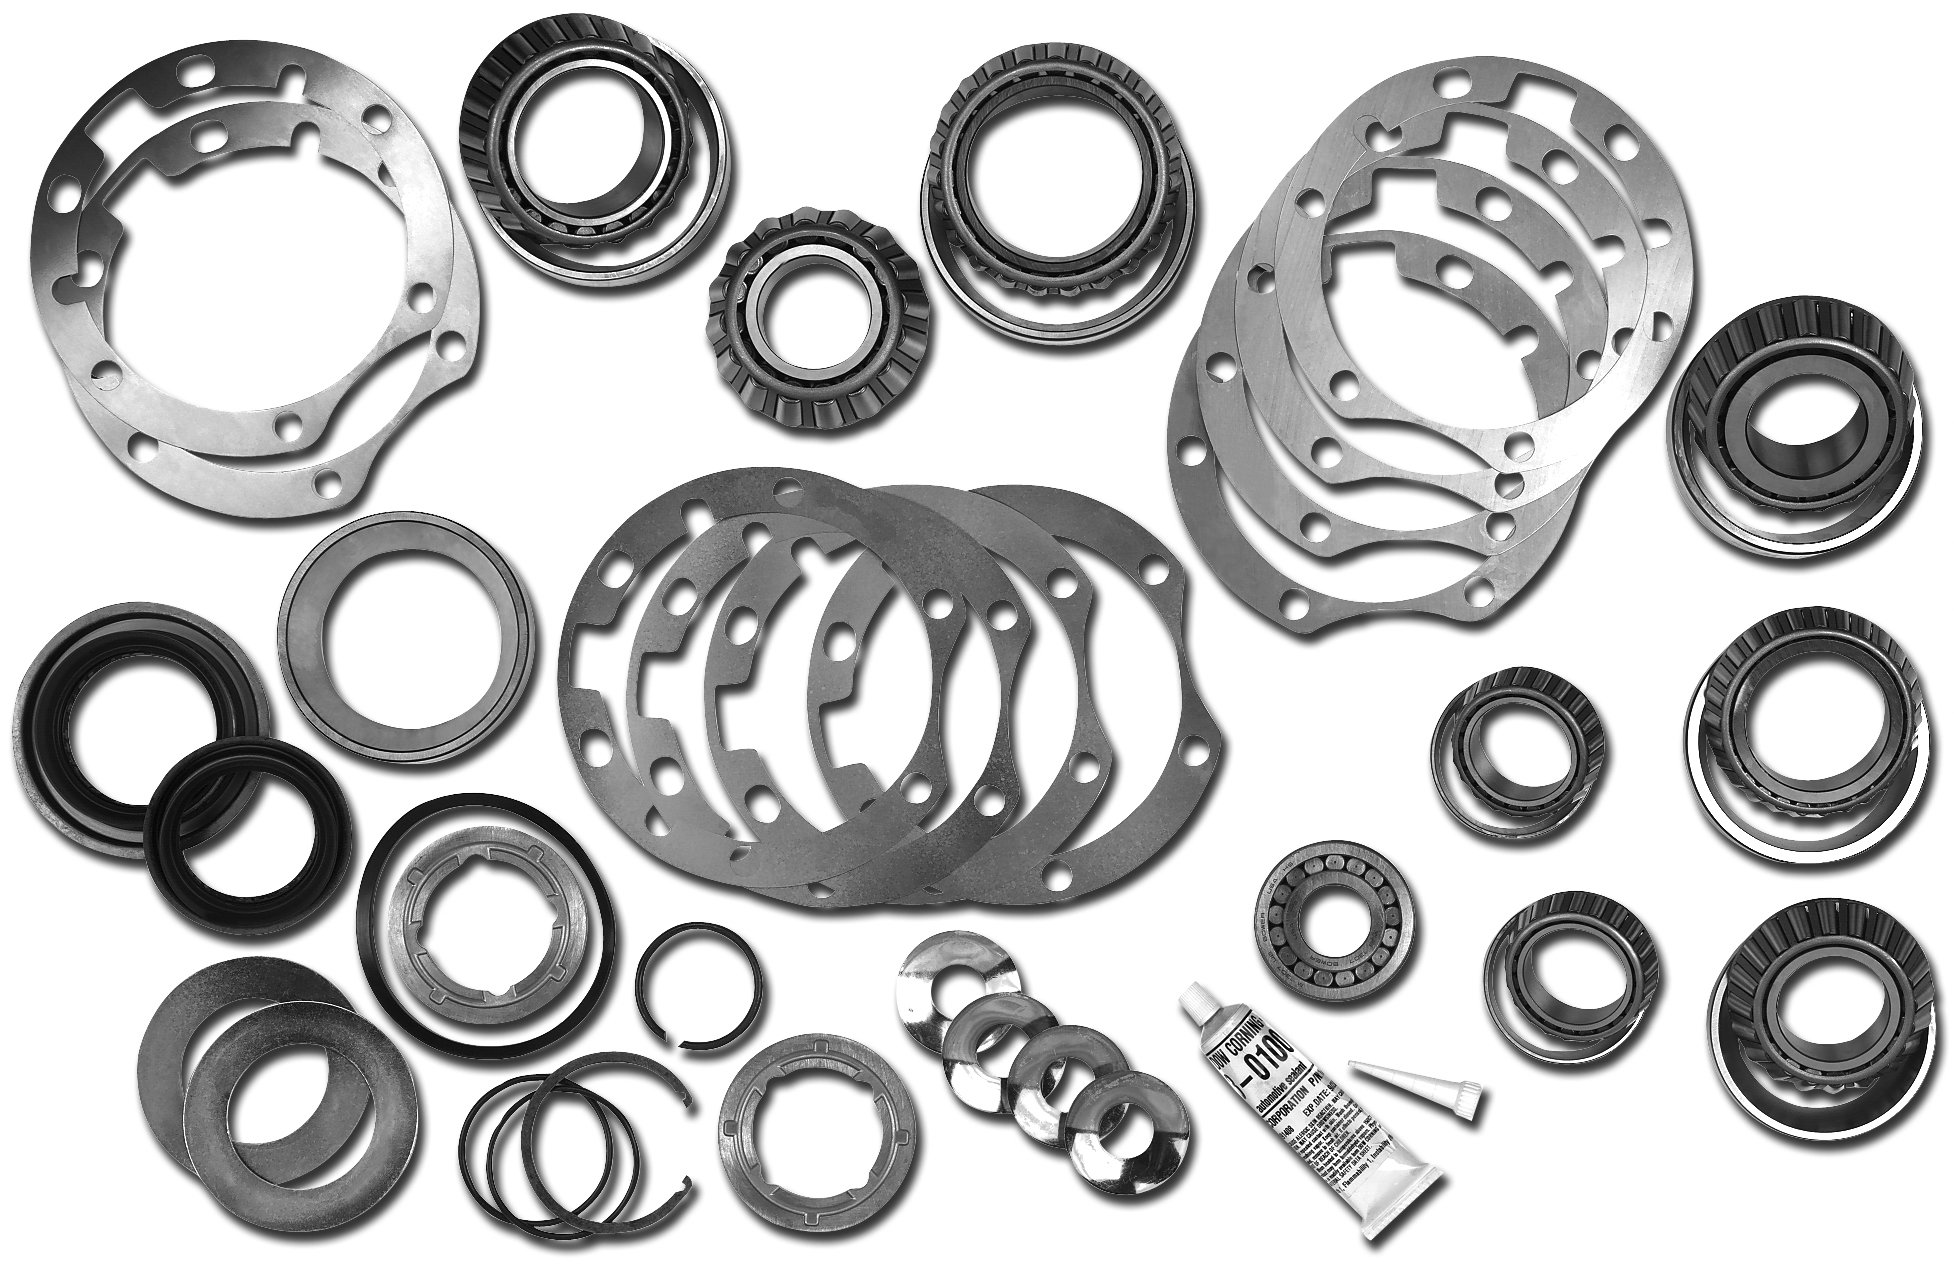 Dana Spicer Master Axle Overhaul Kit For Jeep Wrangler Tj With Model 30 Front Axle